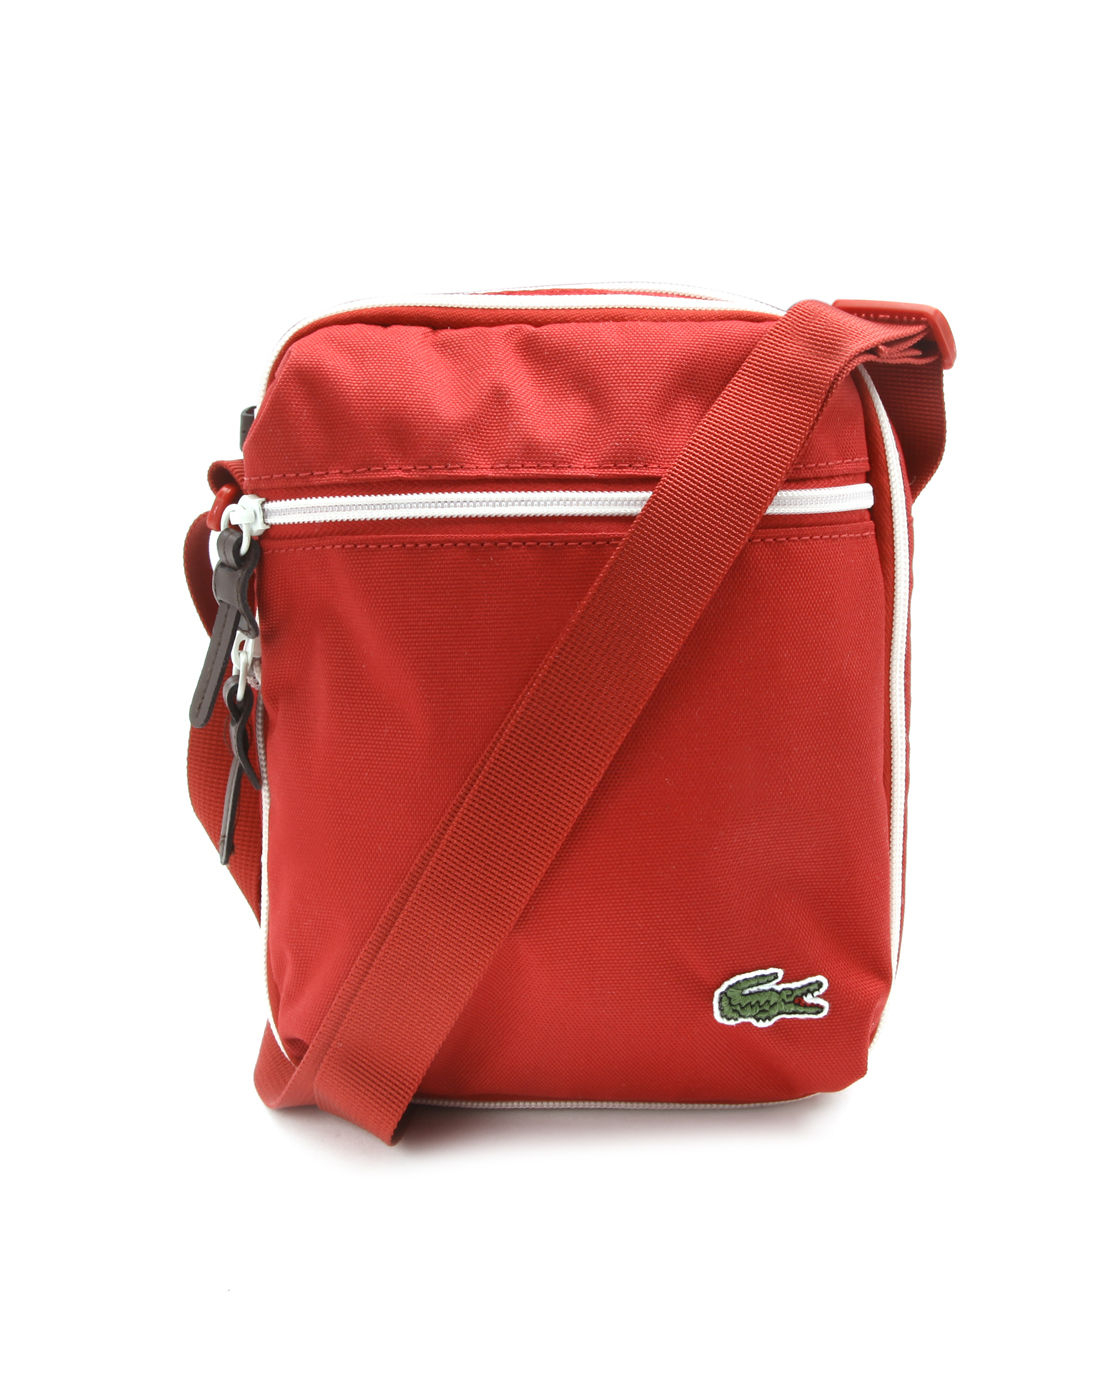 lacoste bags - photo #11